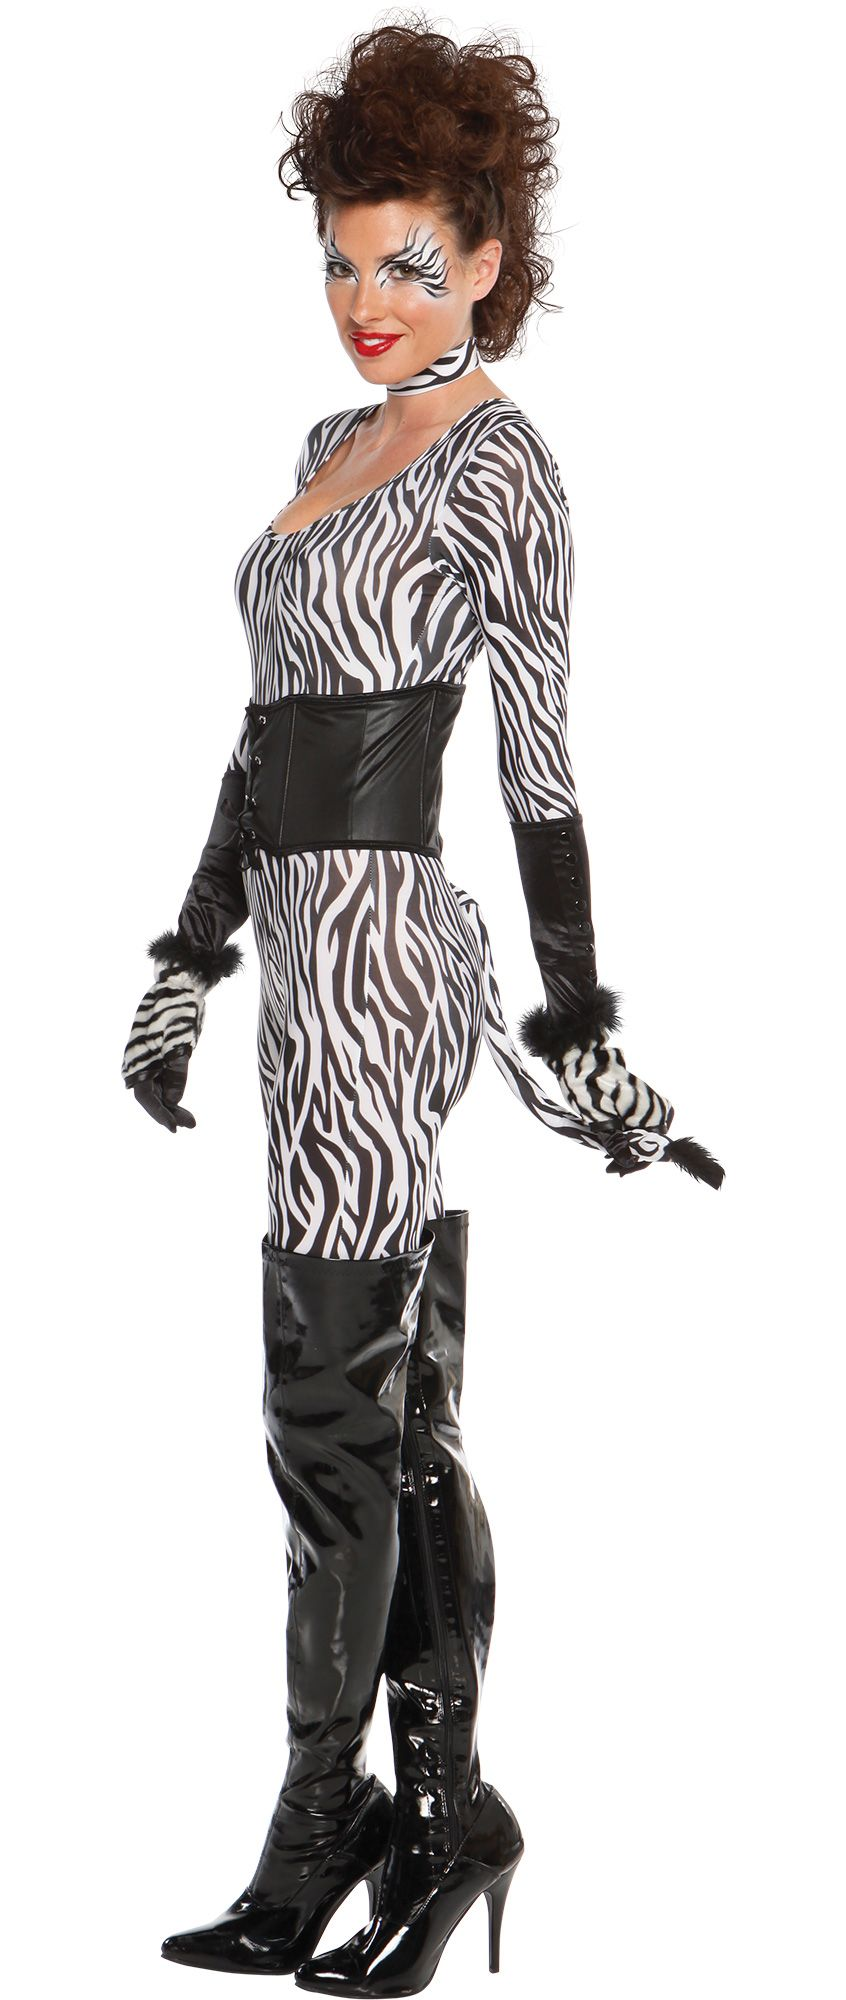 Make Your Costume - Womens Zebra Cutie Costume #1